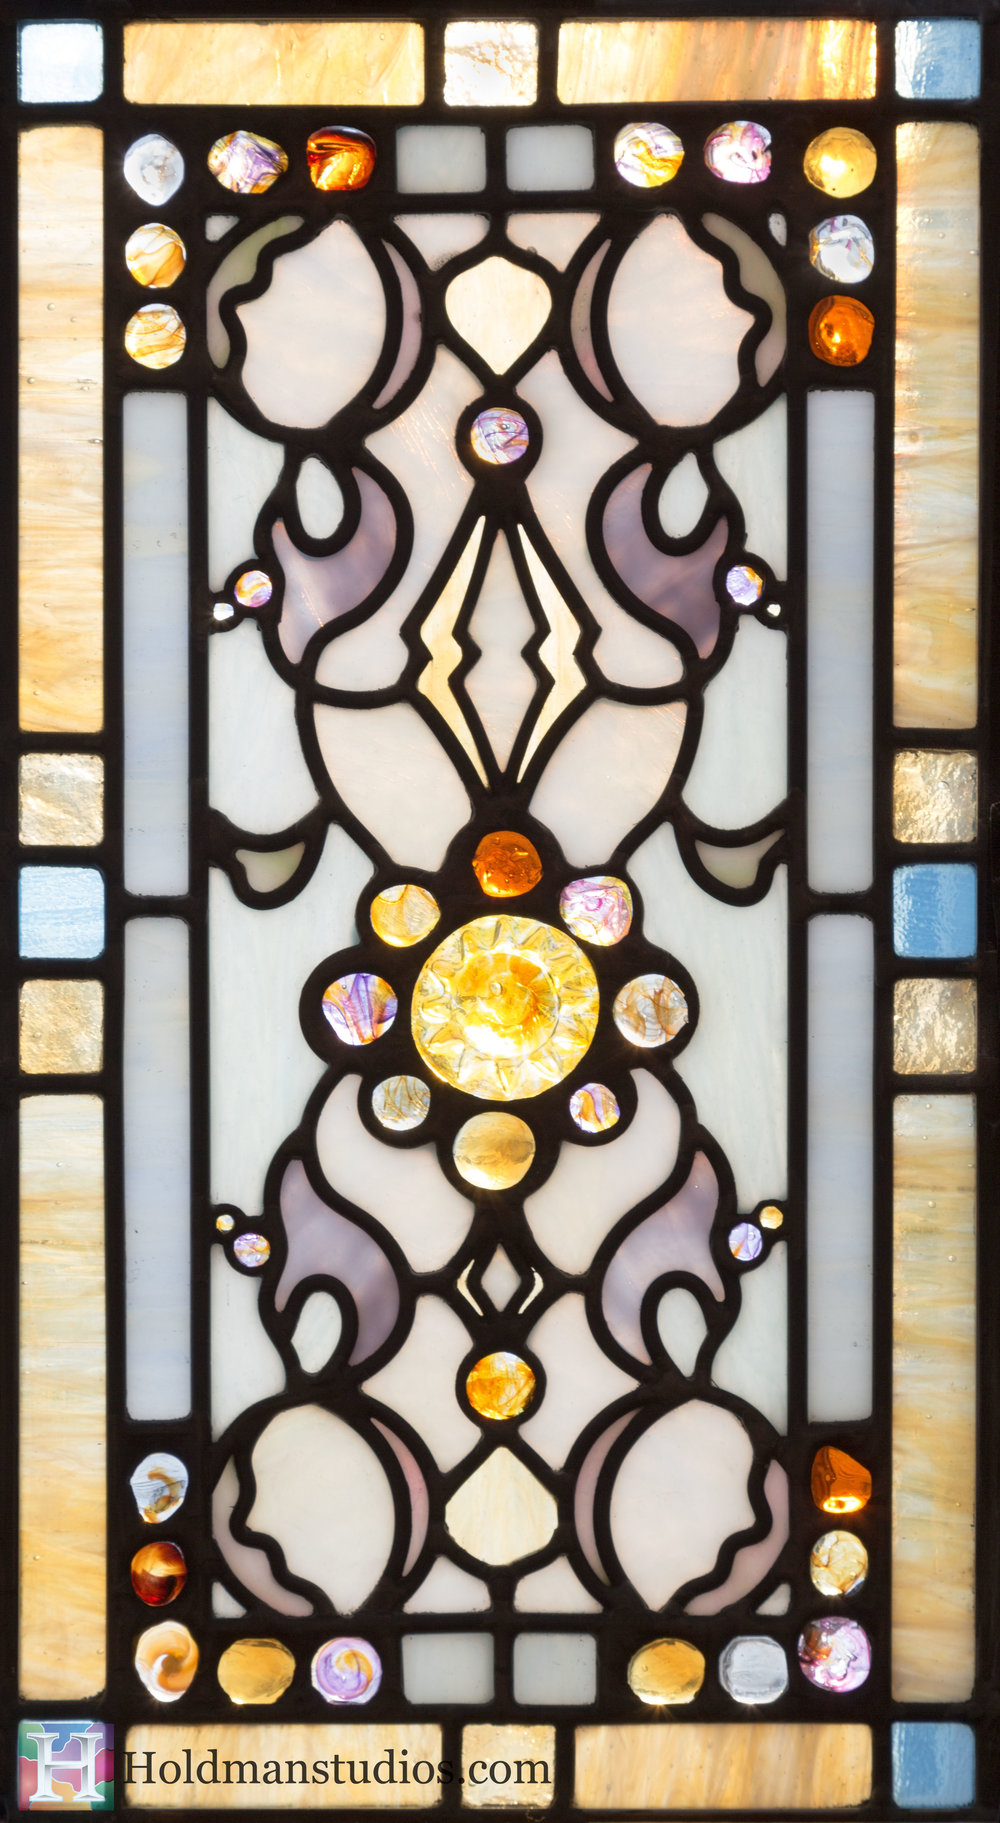 Holdman-Studios-Stained-Glass-Small-Window-Flowers-Floral-Pattern-Handmade-Jewels-Square-Rectangles.jpg